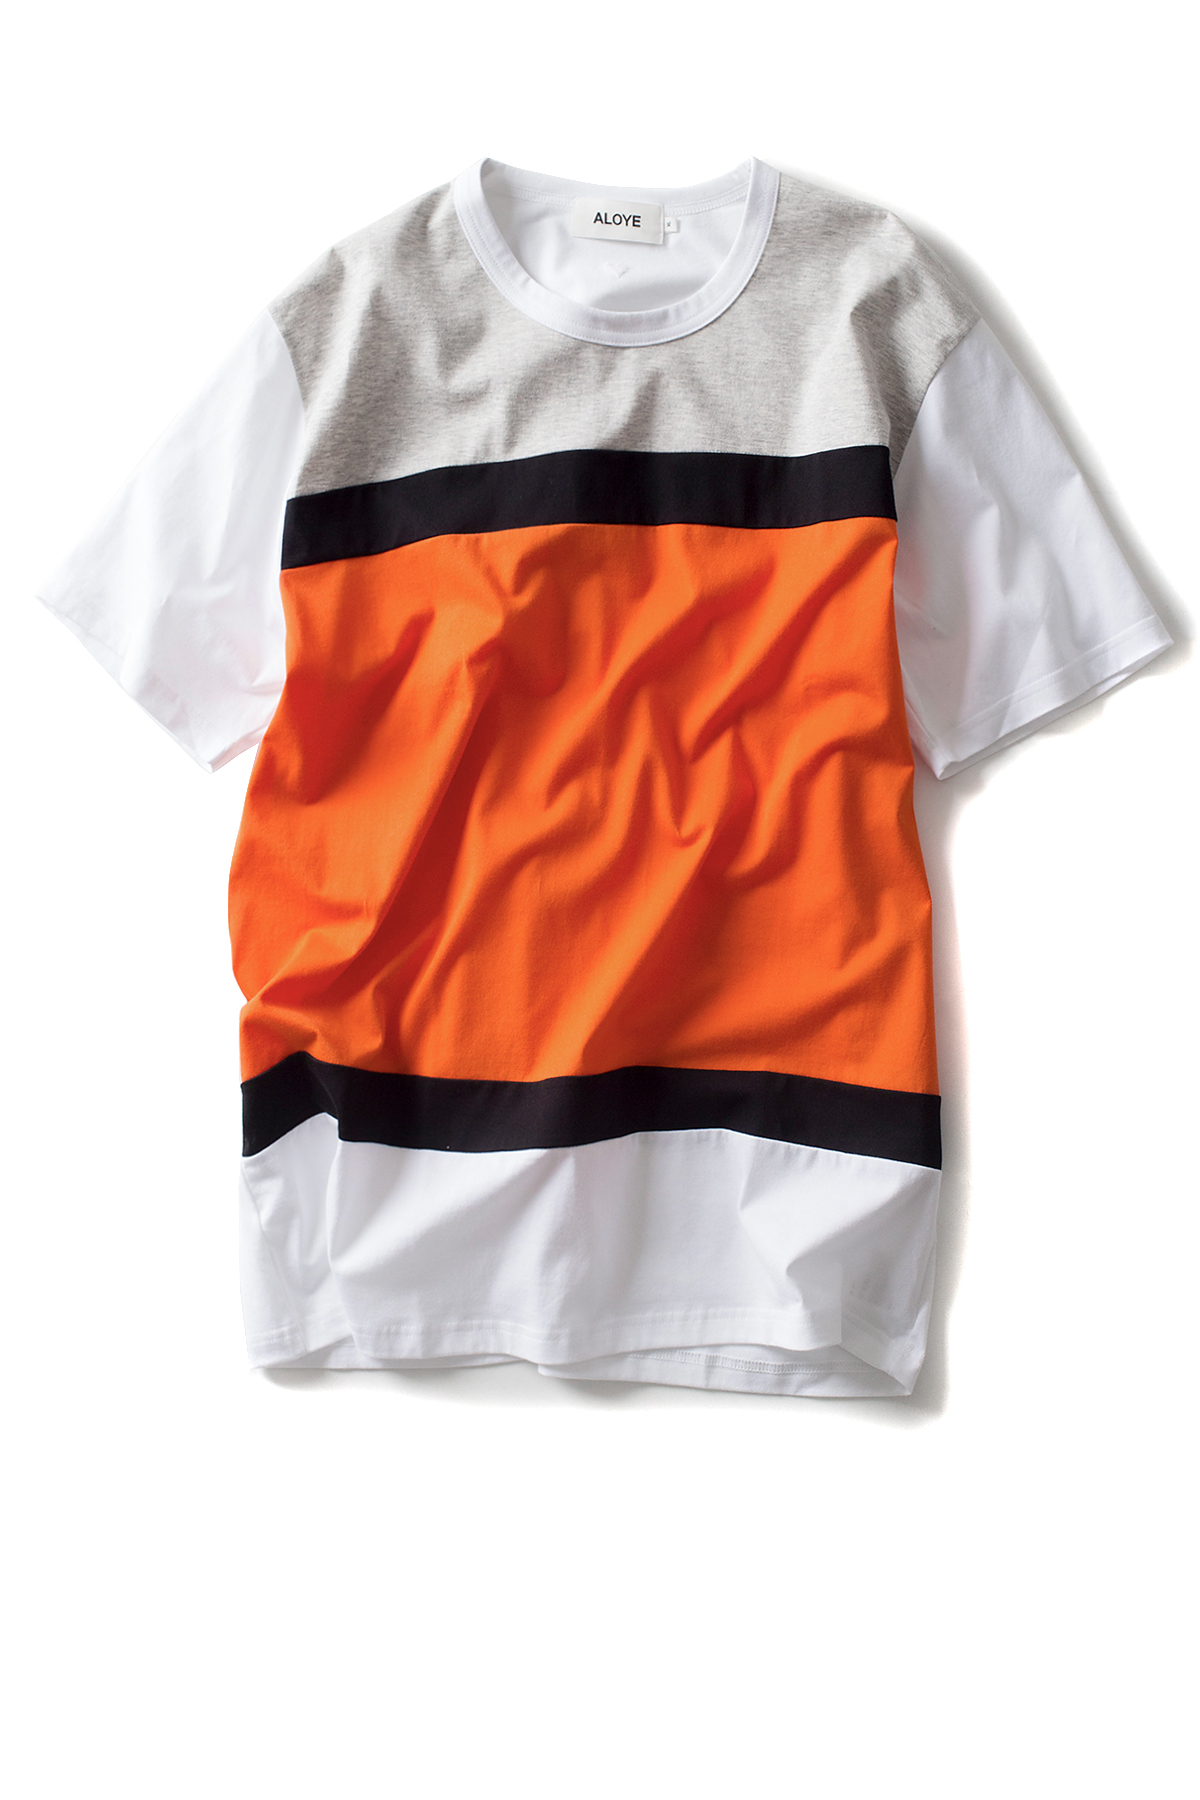 ALOYE : Color Blocks - Short Sleeve T-SHIRT (Grey / Orange)